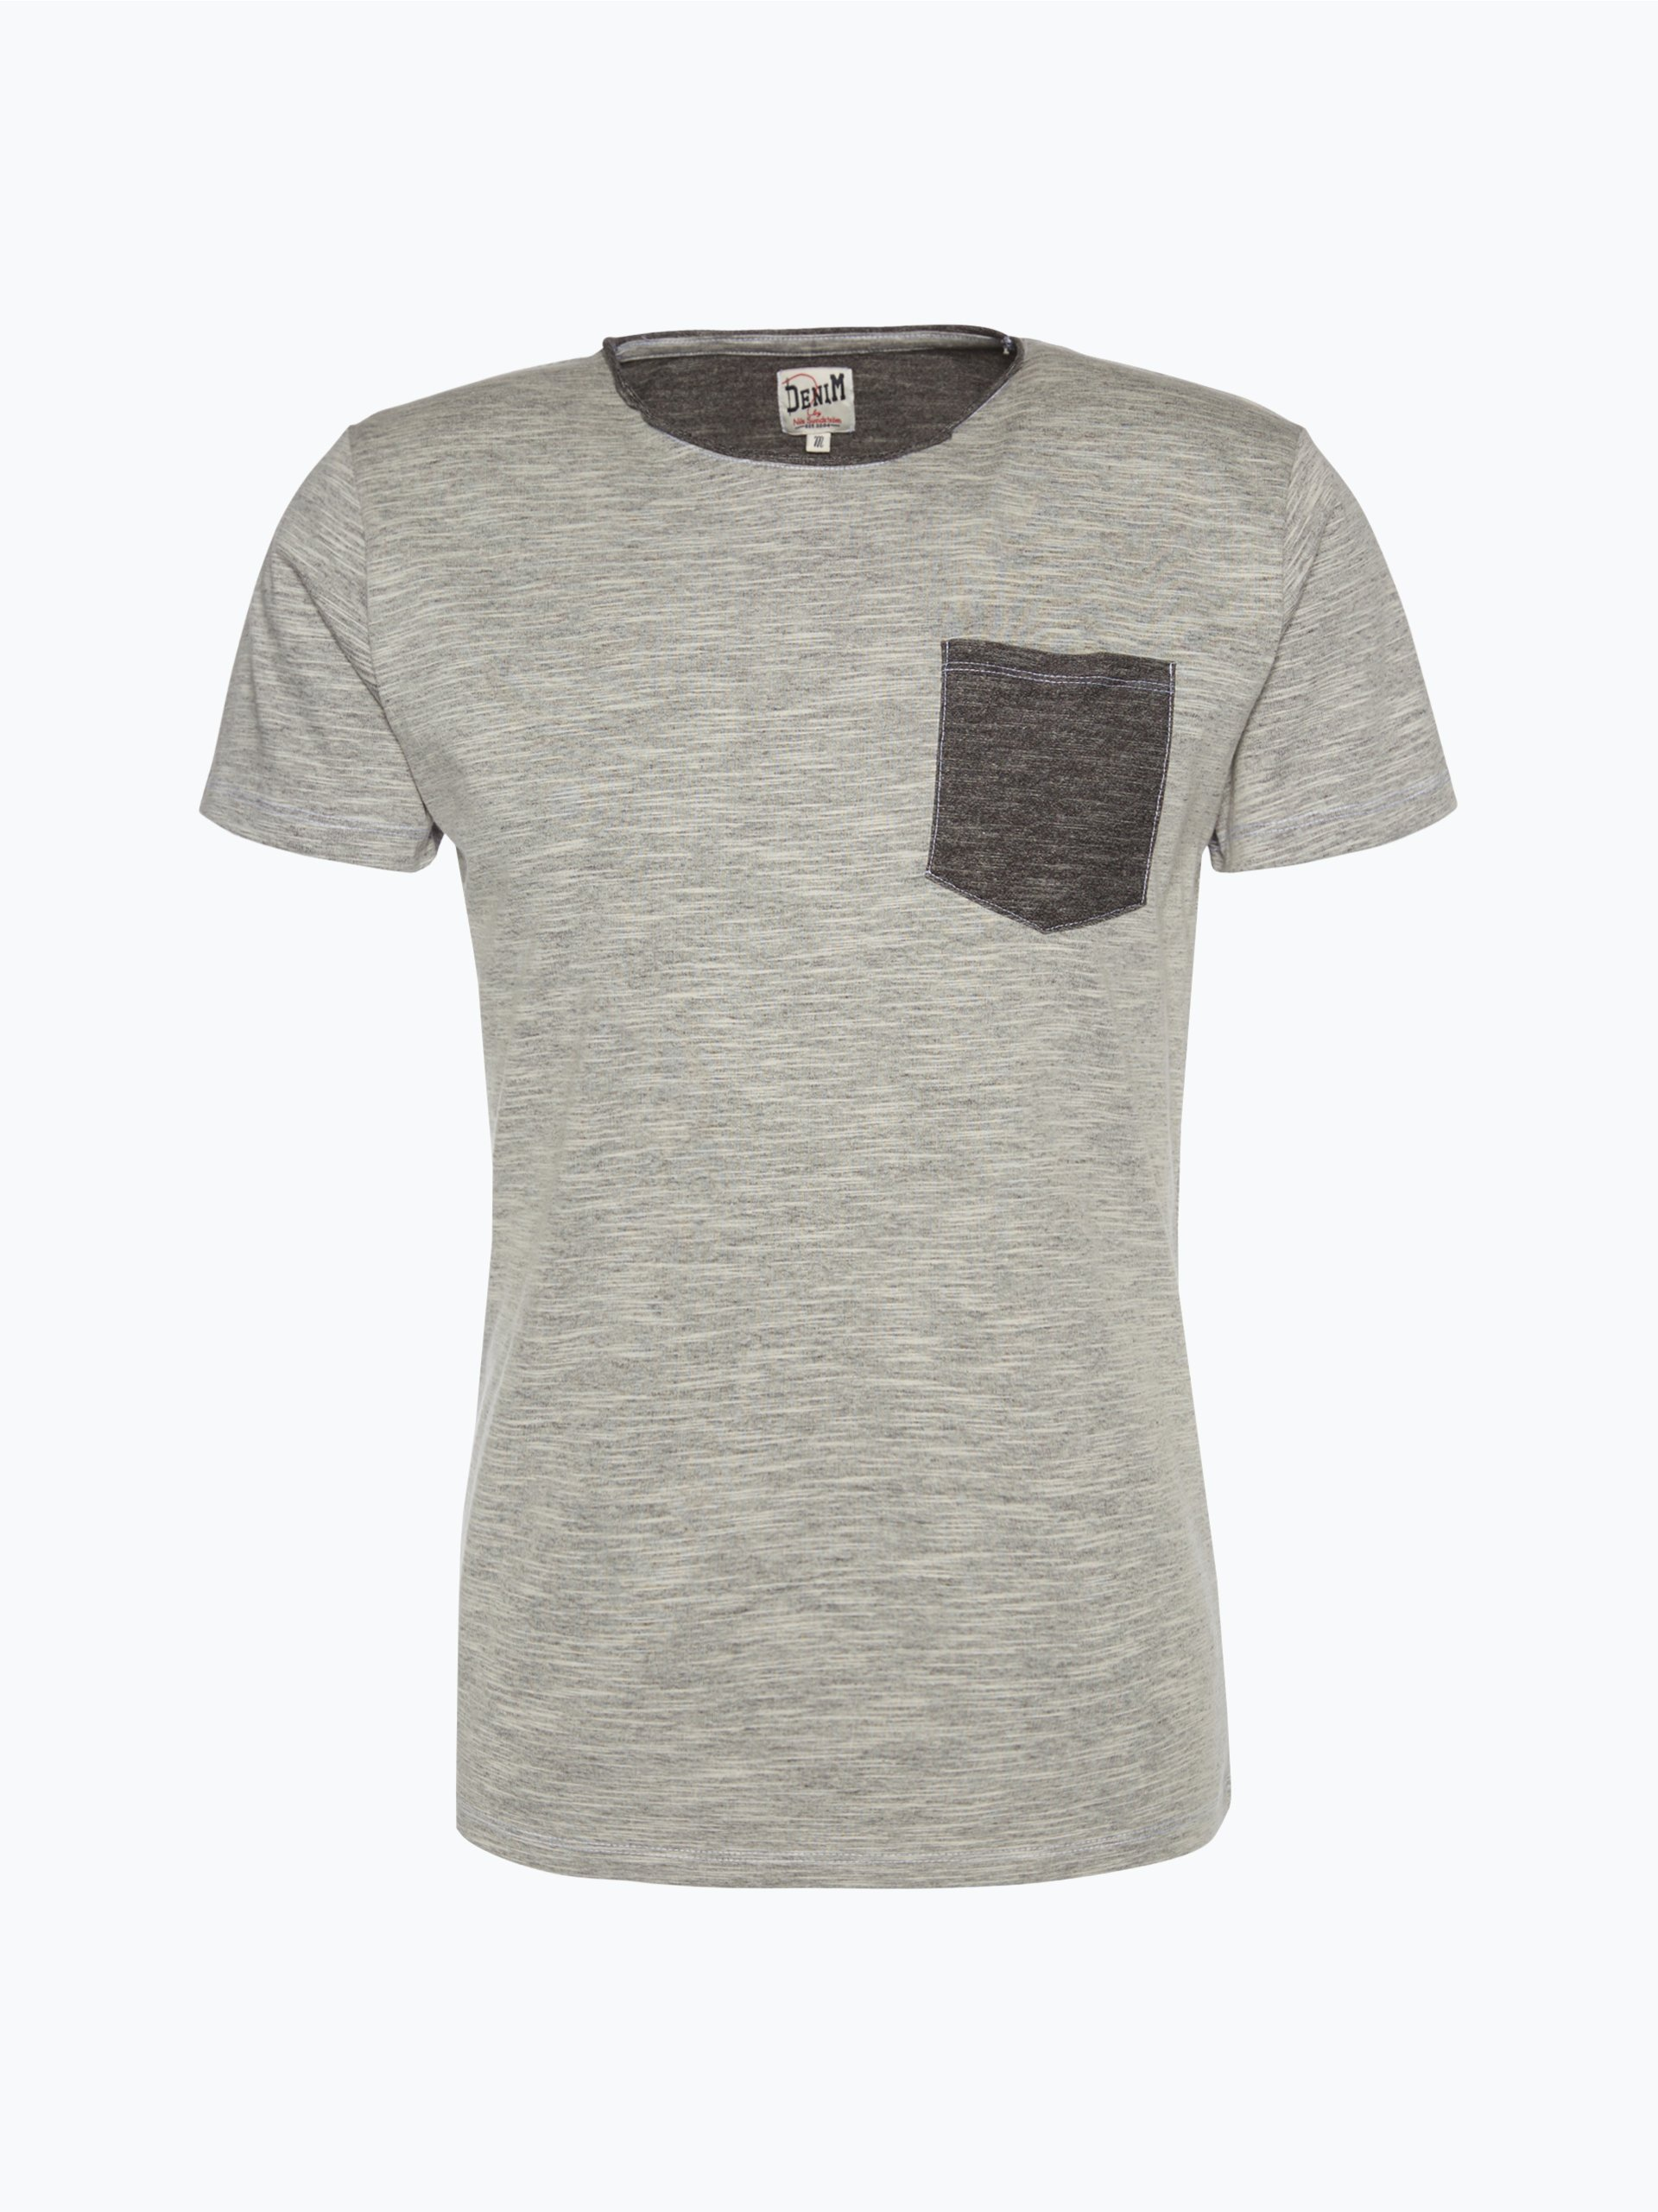 DENIM by Nils Sundström Herren T-Shirt